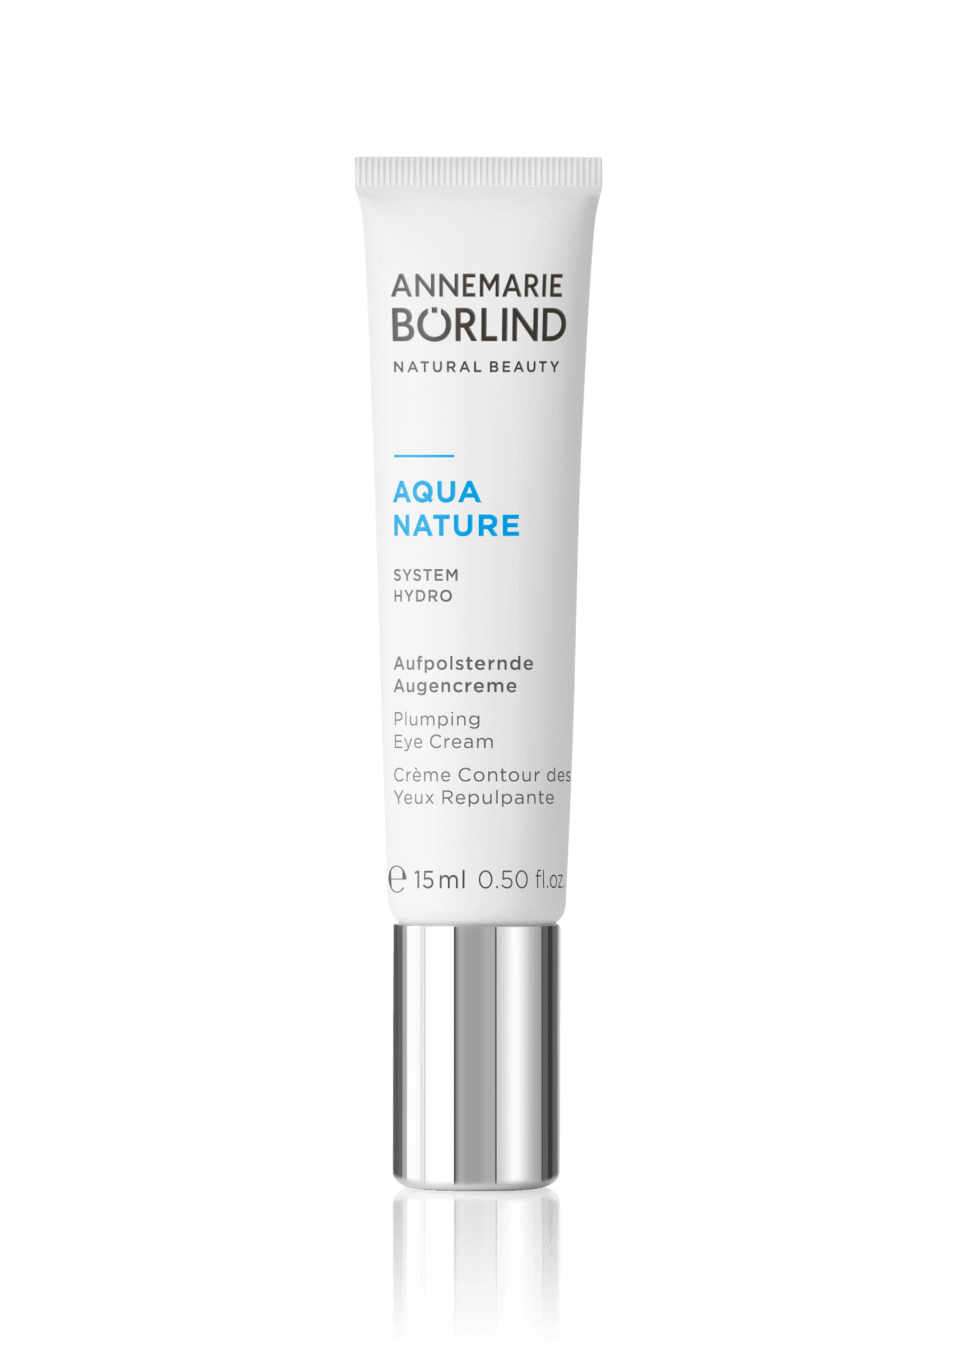 Personal Care - Annemarie Borlind Plumping Eye Cream, 15mL